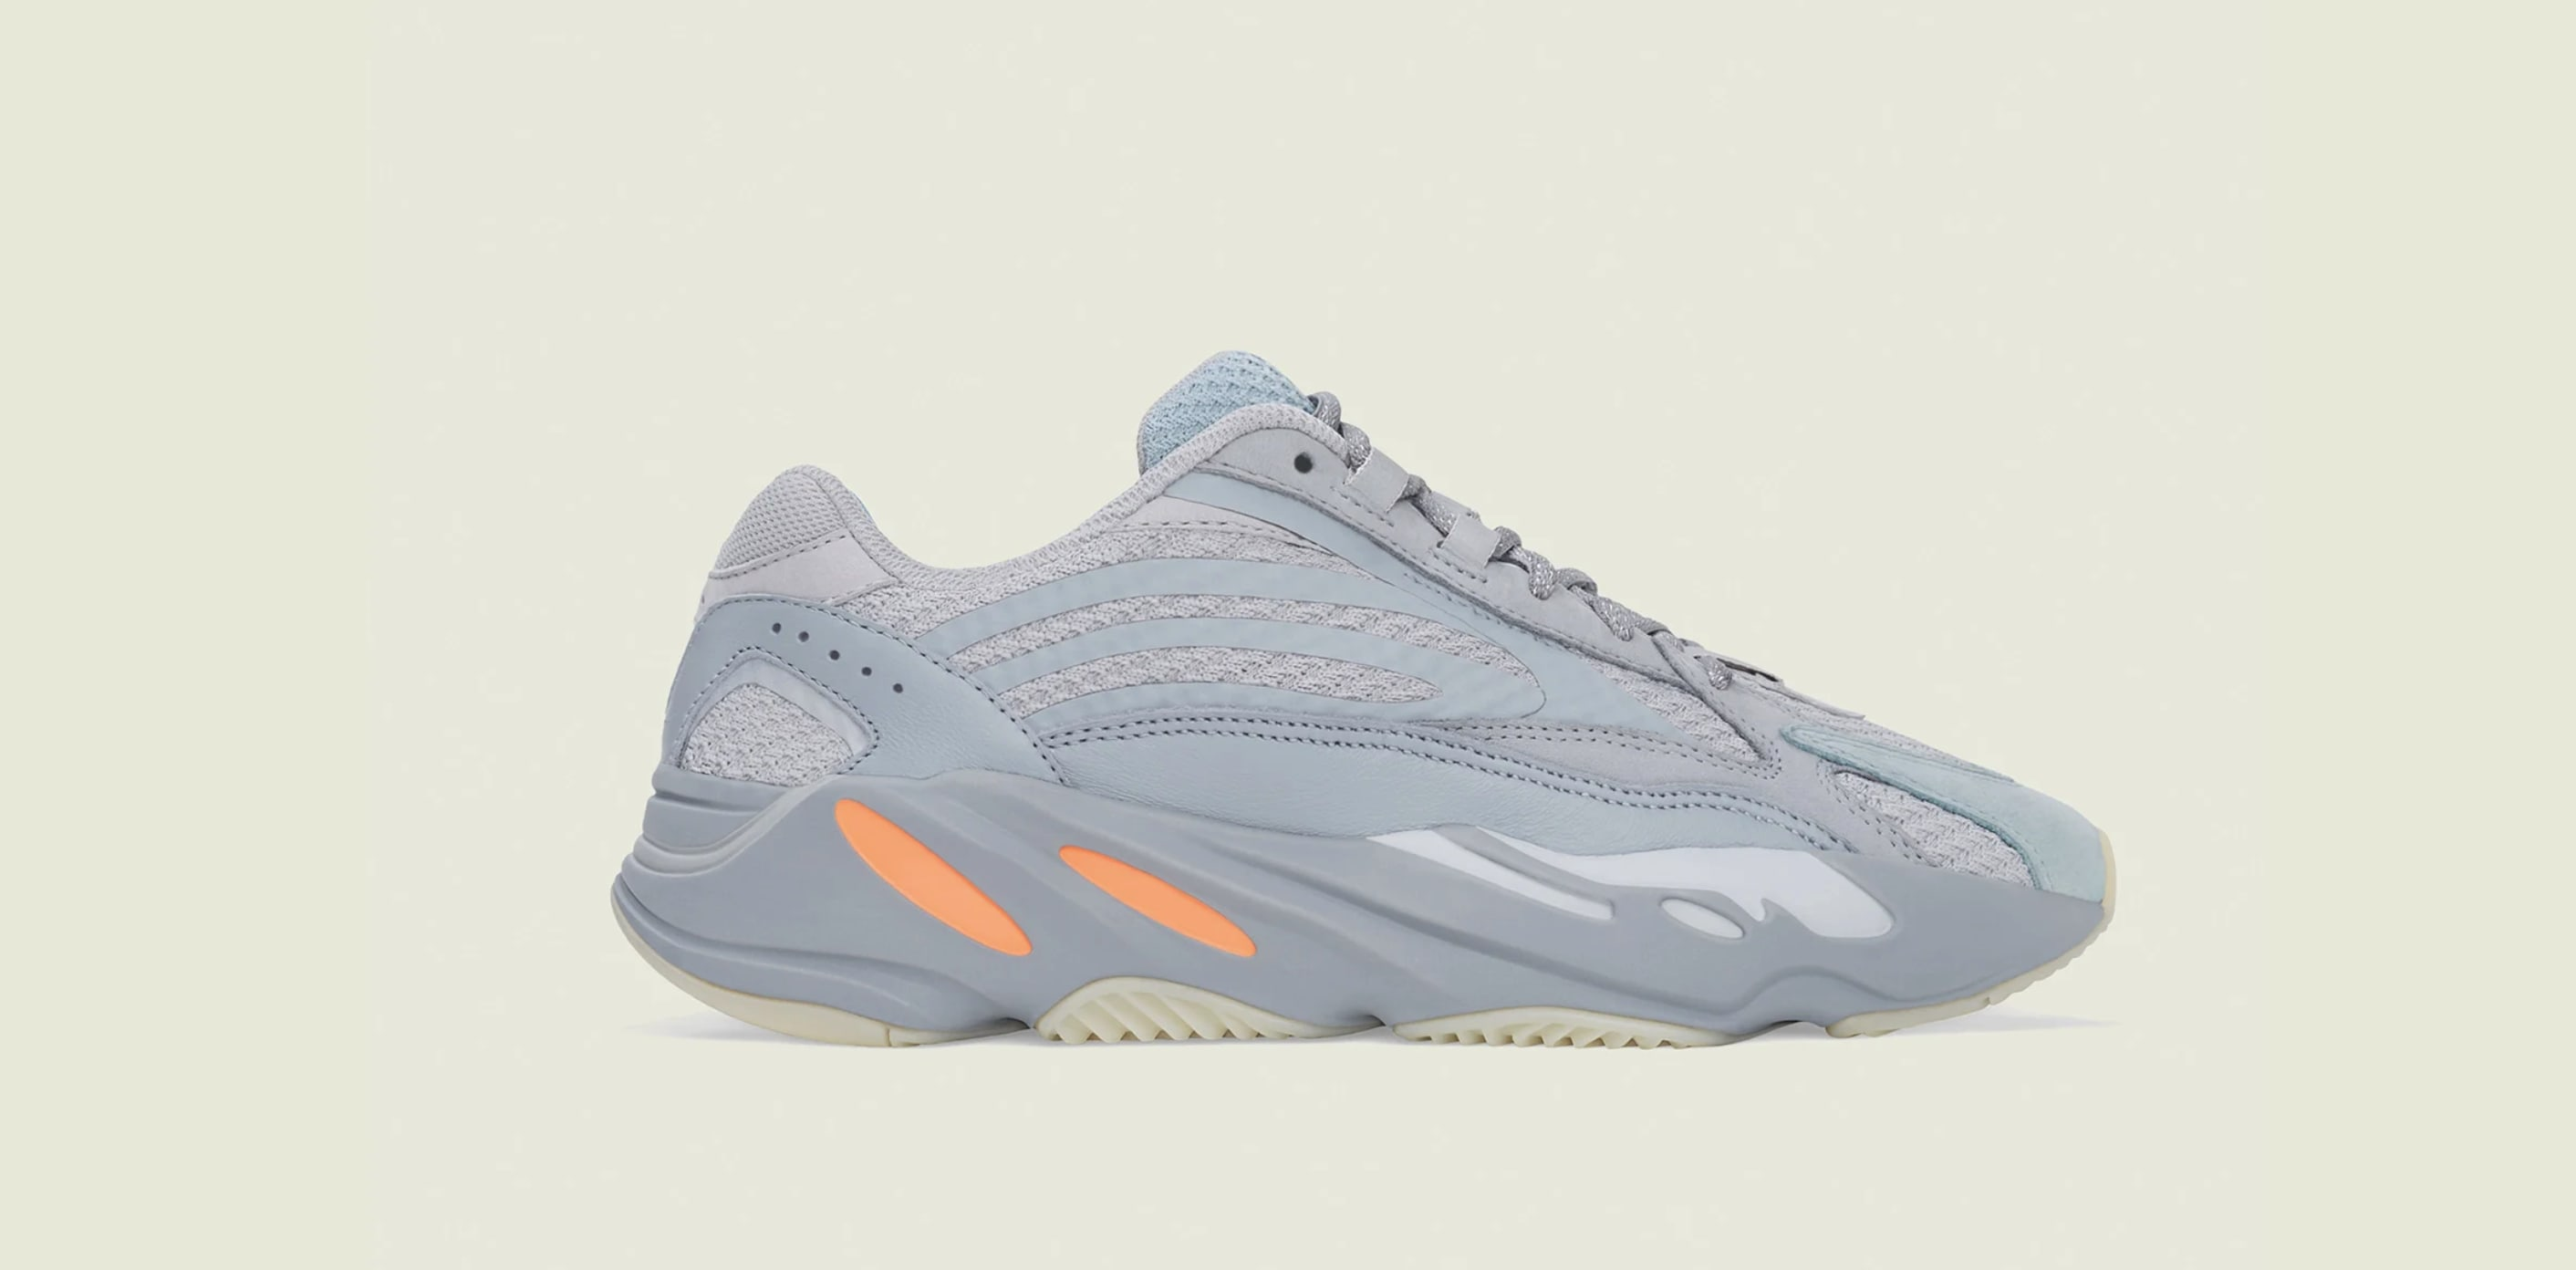 buy popular 1ec7c 1eaa8 END. Features | adidas + Kanye West YEEZY BOOST 700 'Inertia ...